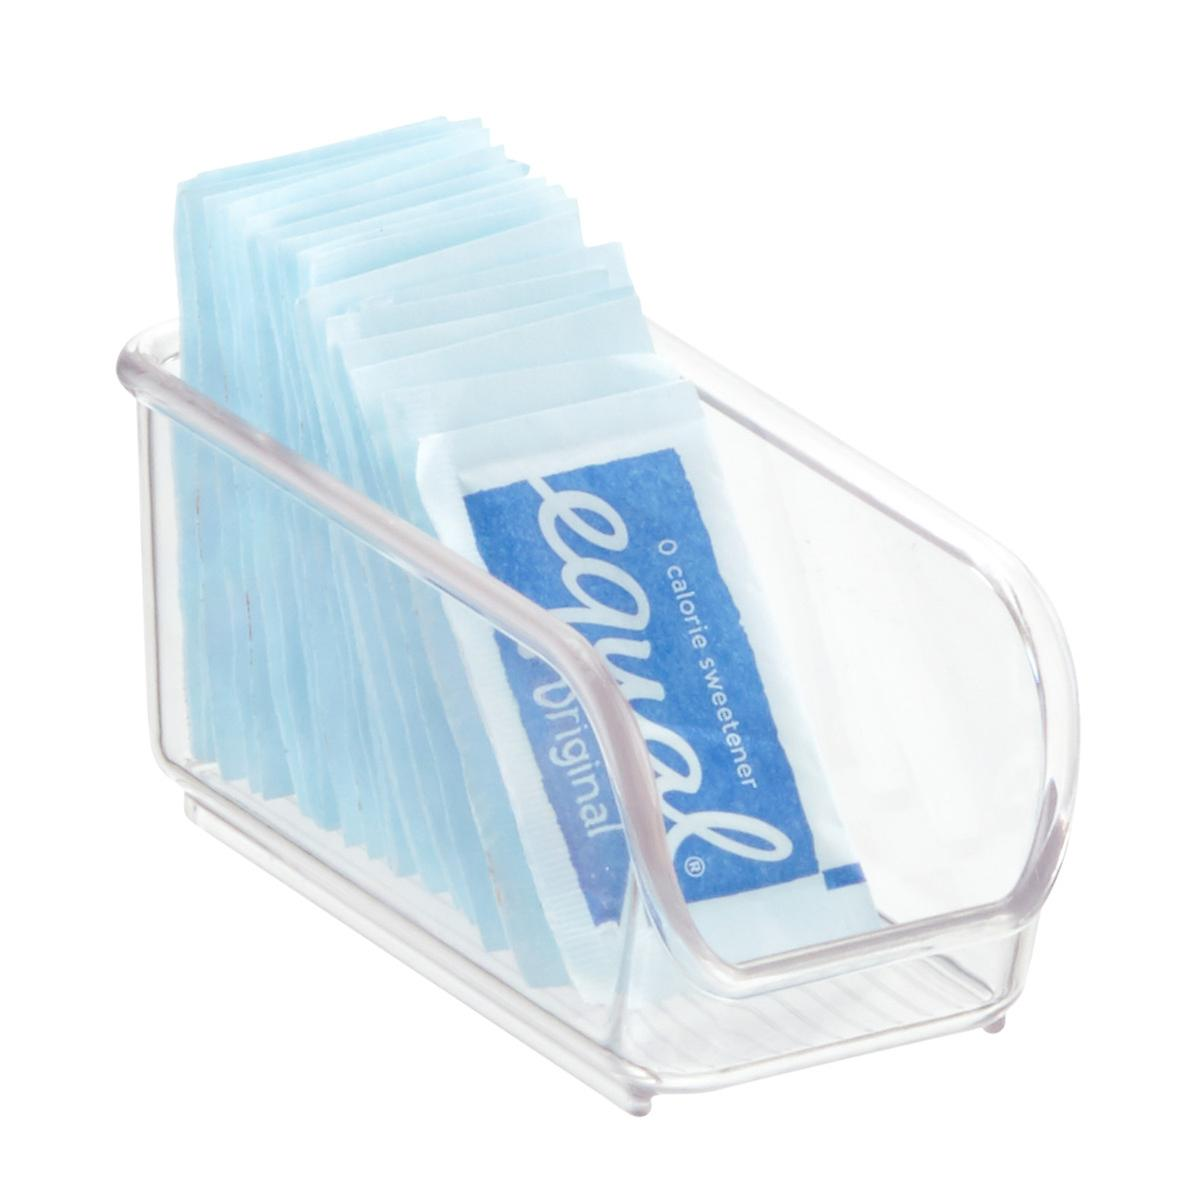 Idesign Linus Sugar Packet Holder The Container Store